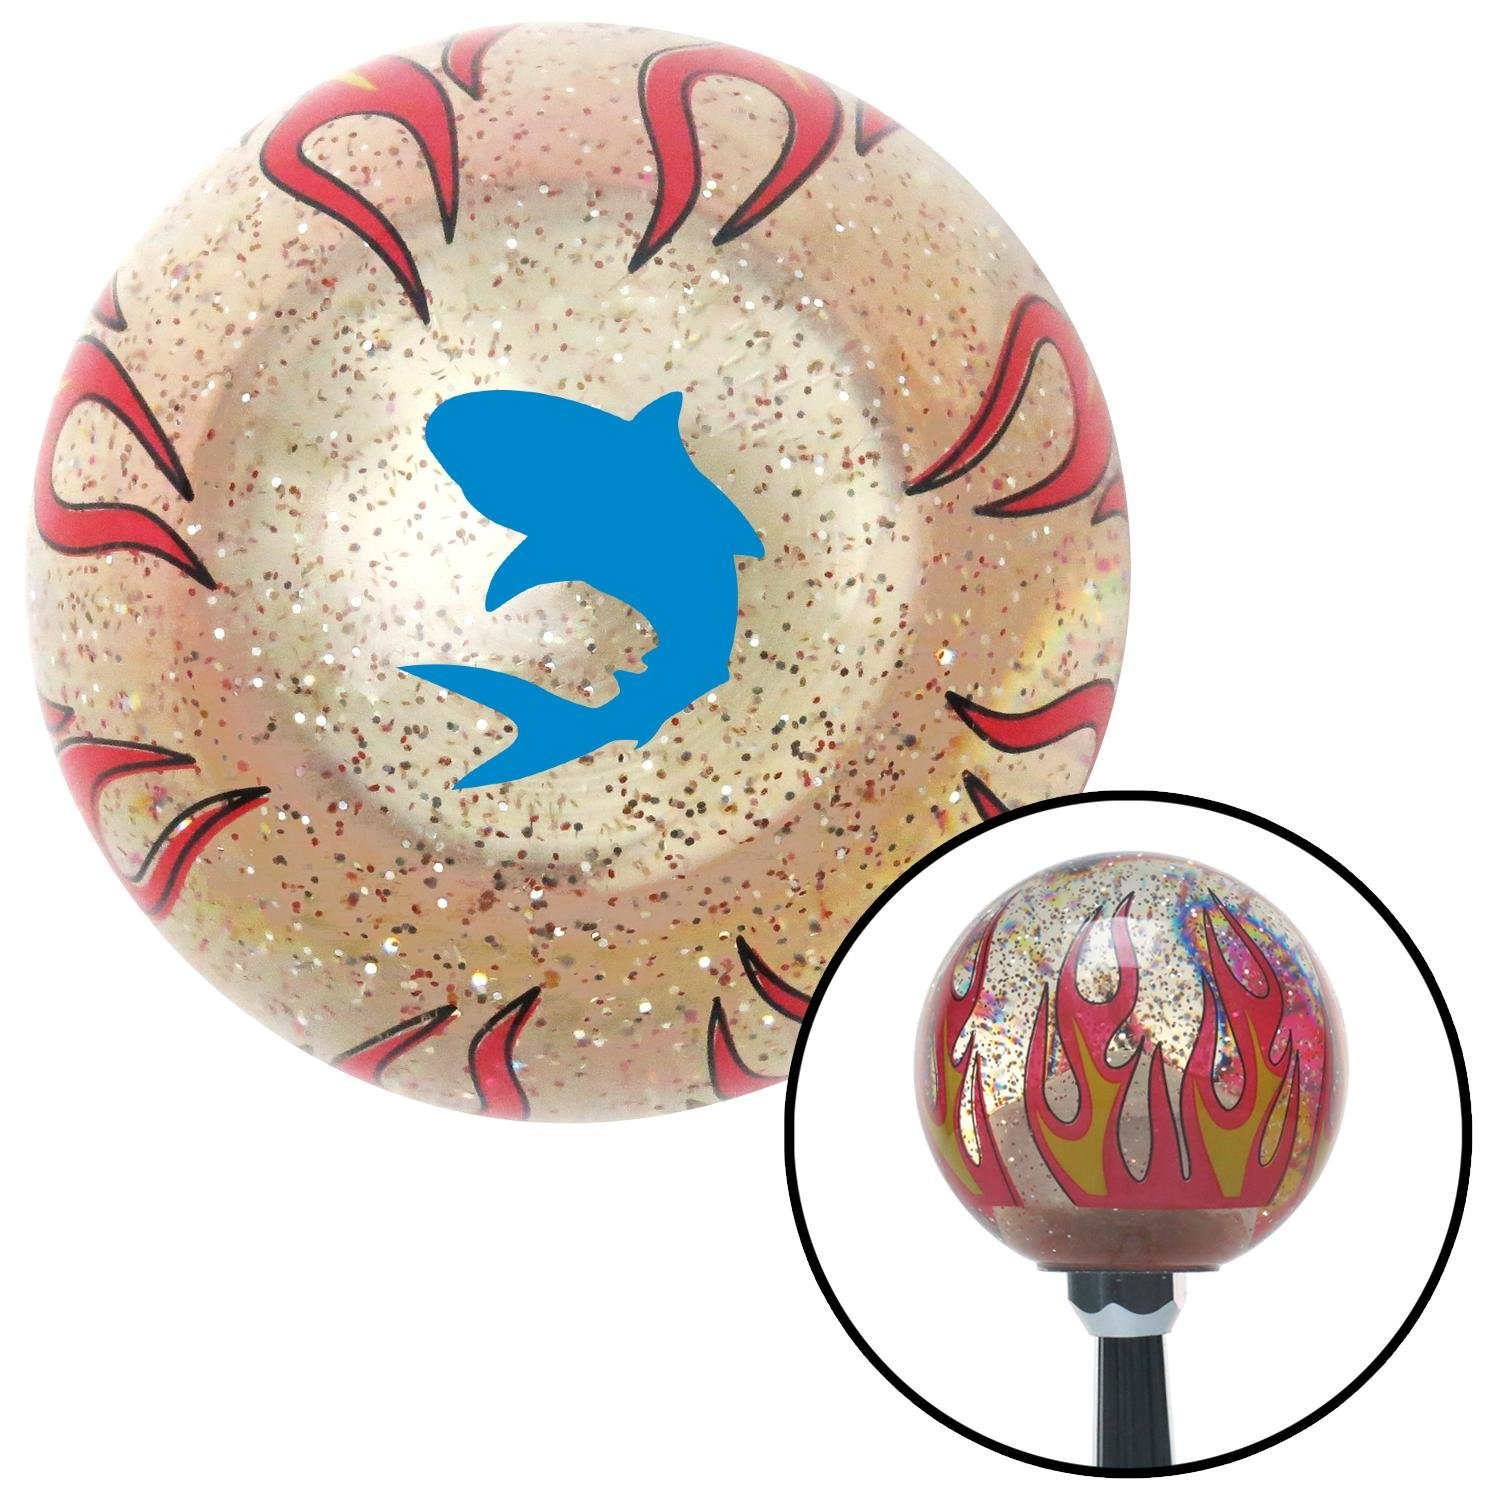 American Shifter 295204 Shift Knob Blue Shark Clear Flame Metal Flake with M16 x 1.5 Insert